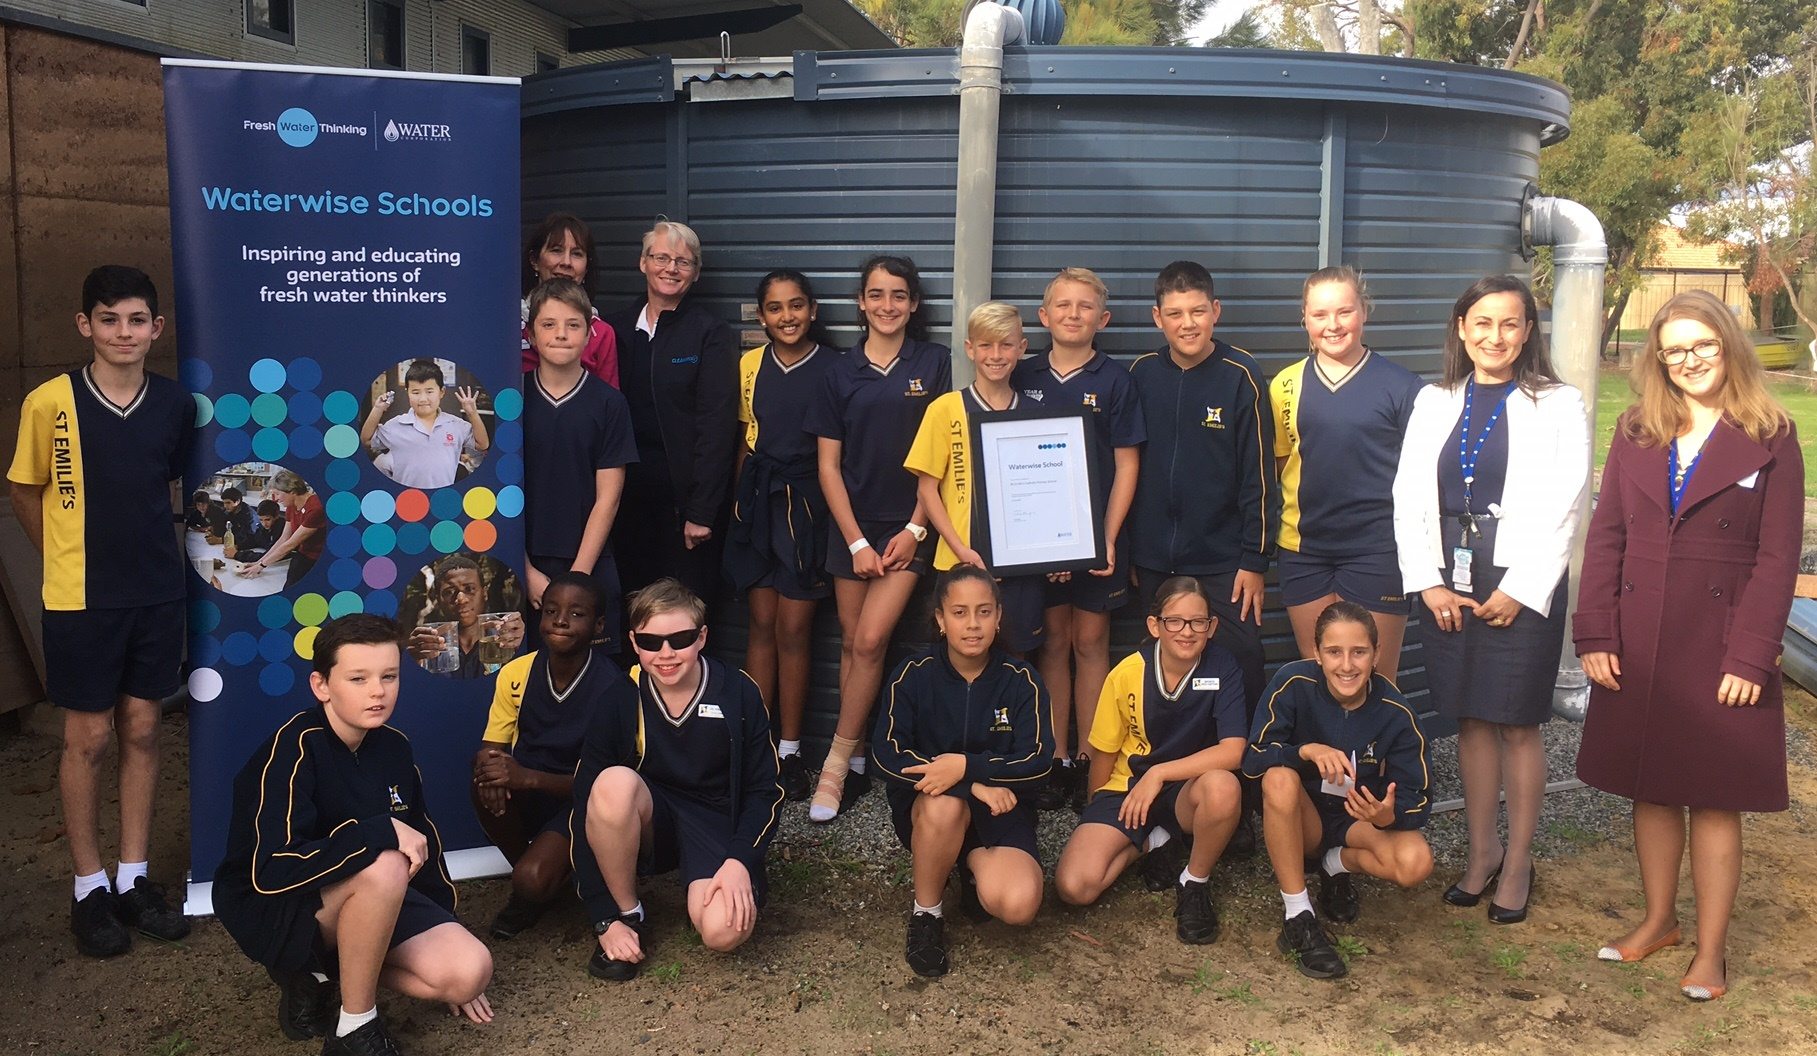 St Emilie's Catholic Primary School celebrates a decade of waterwise education